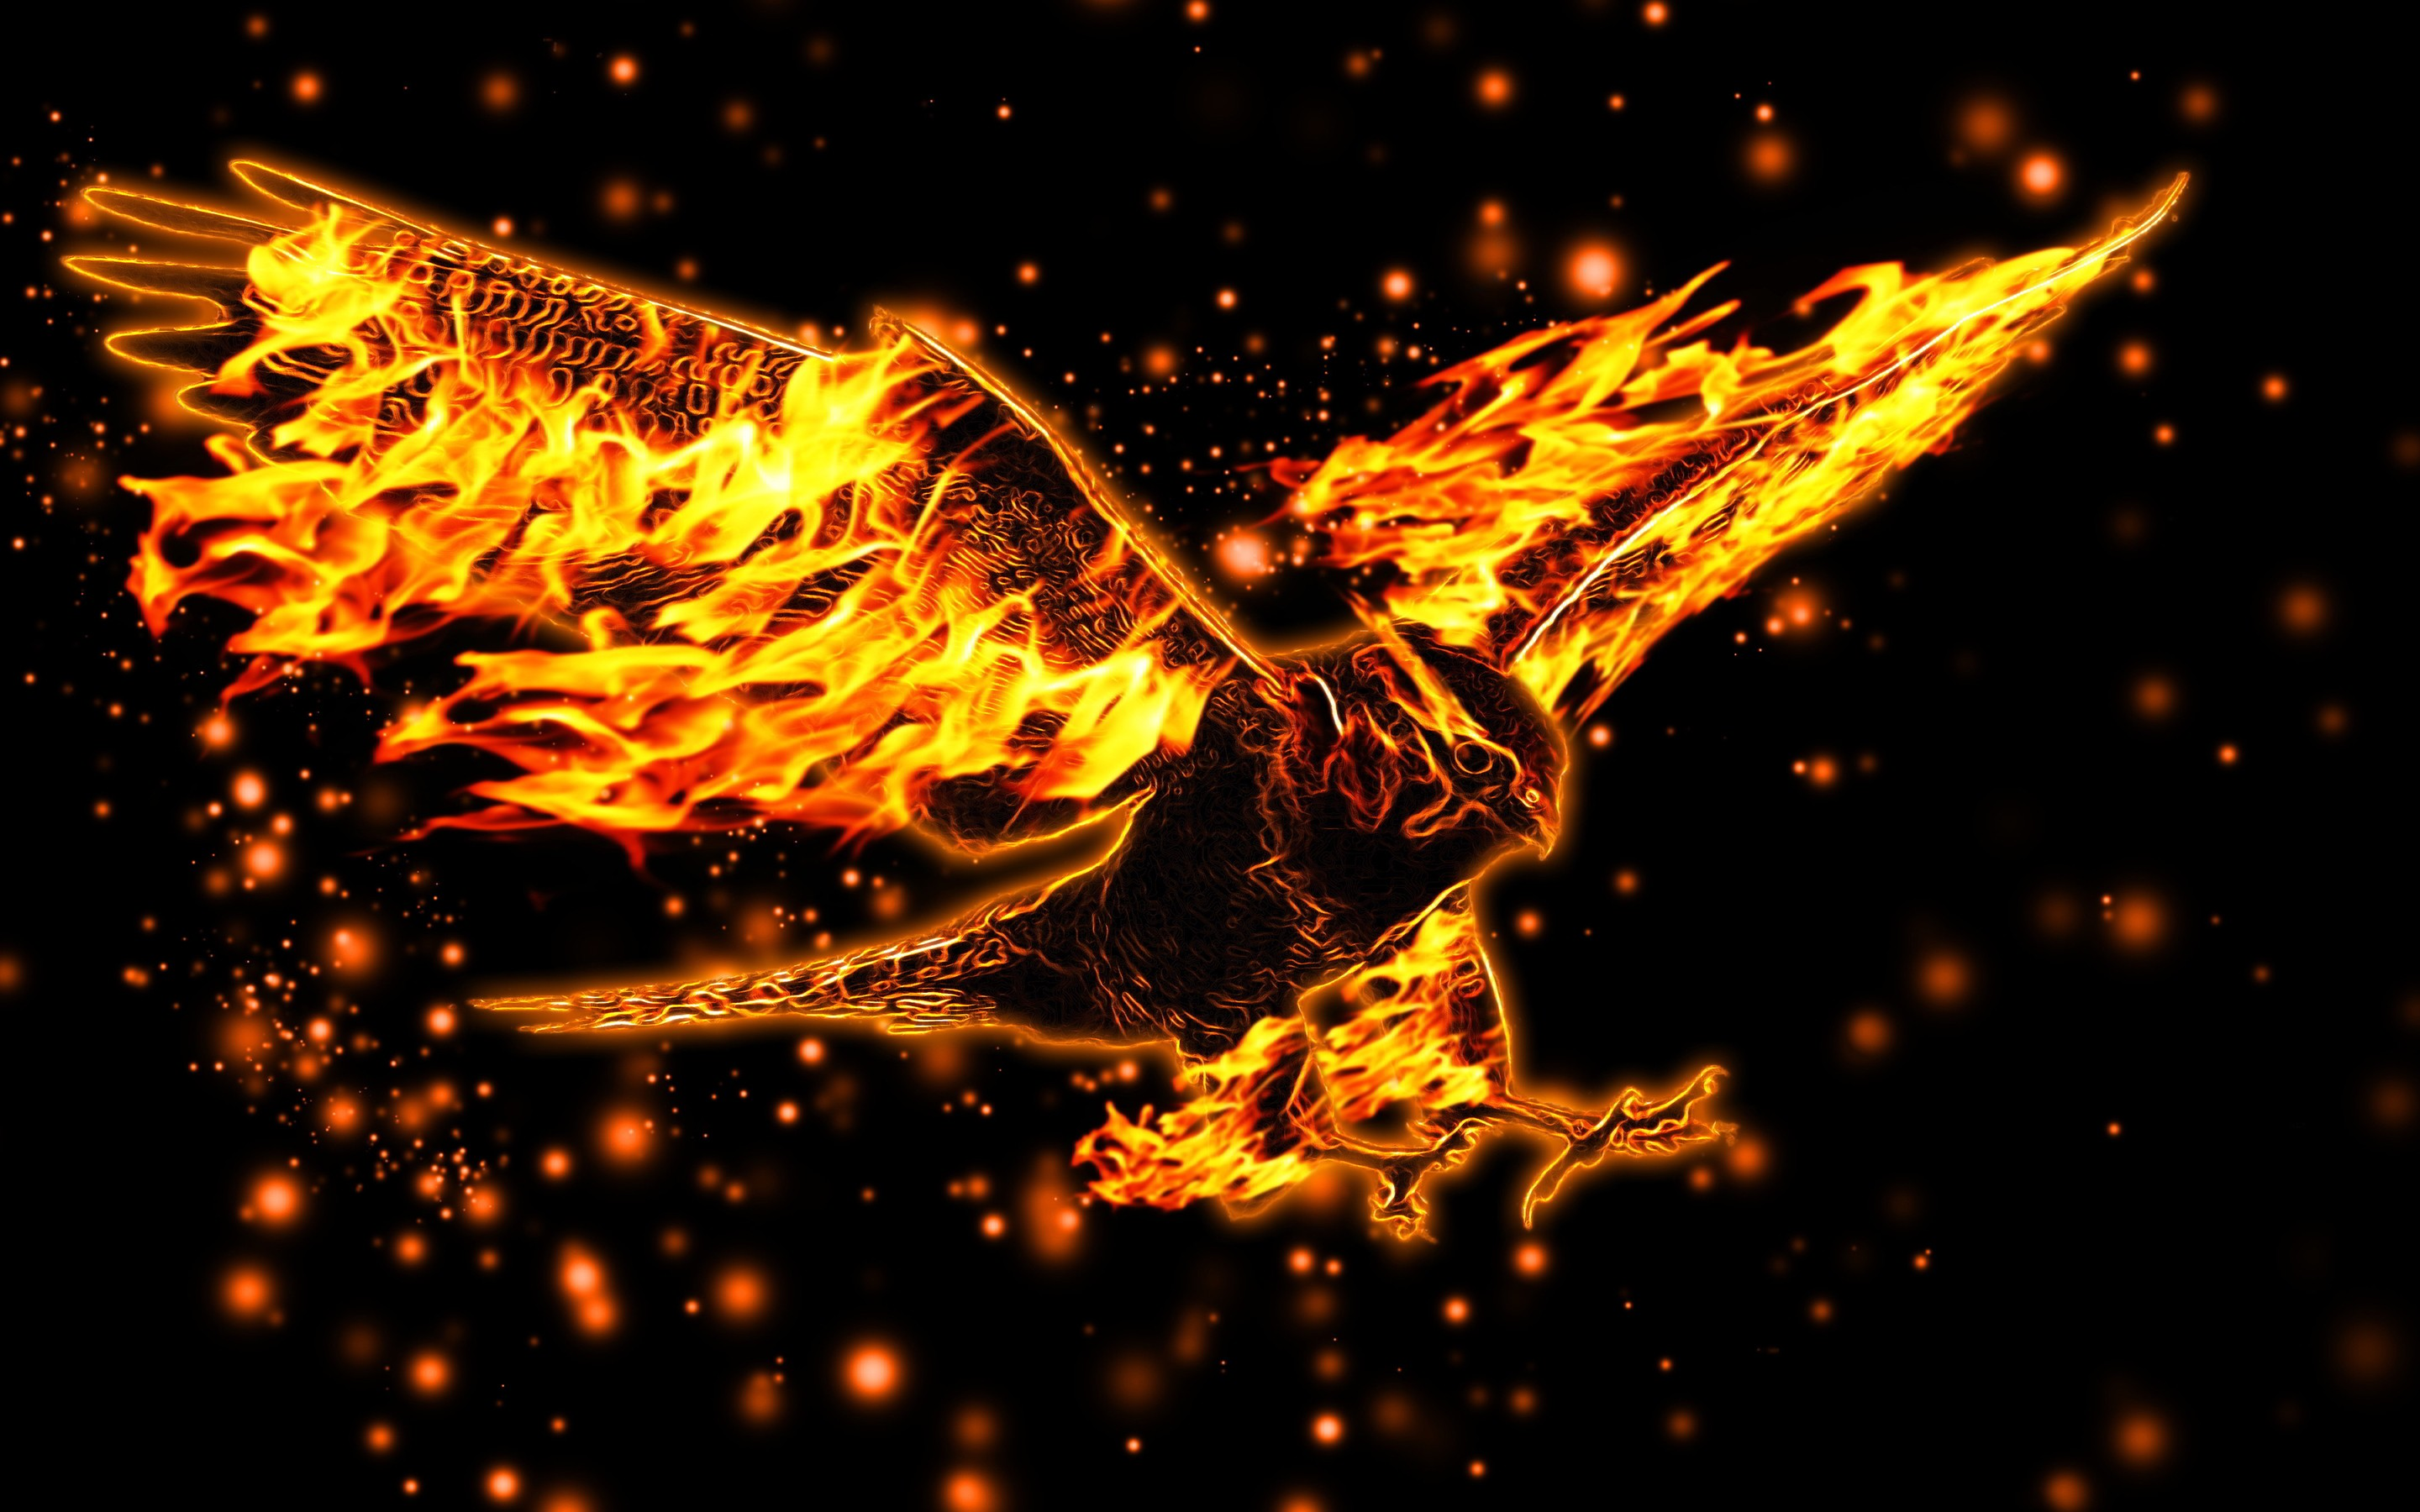 Fire Free Wallpaper Downloads: Fire Background HD ·① Download Free Stunning HD Wallpapers